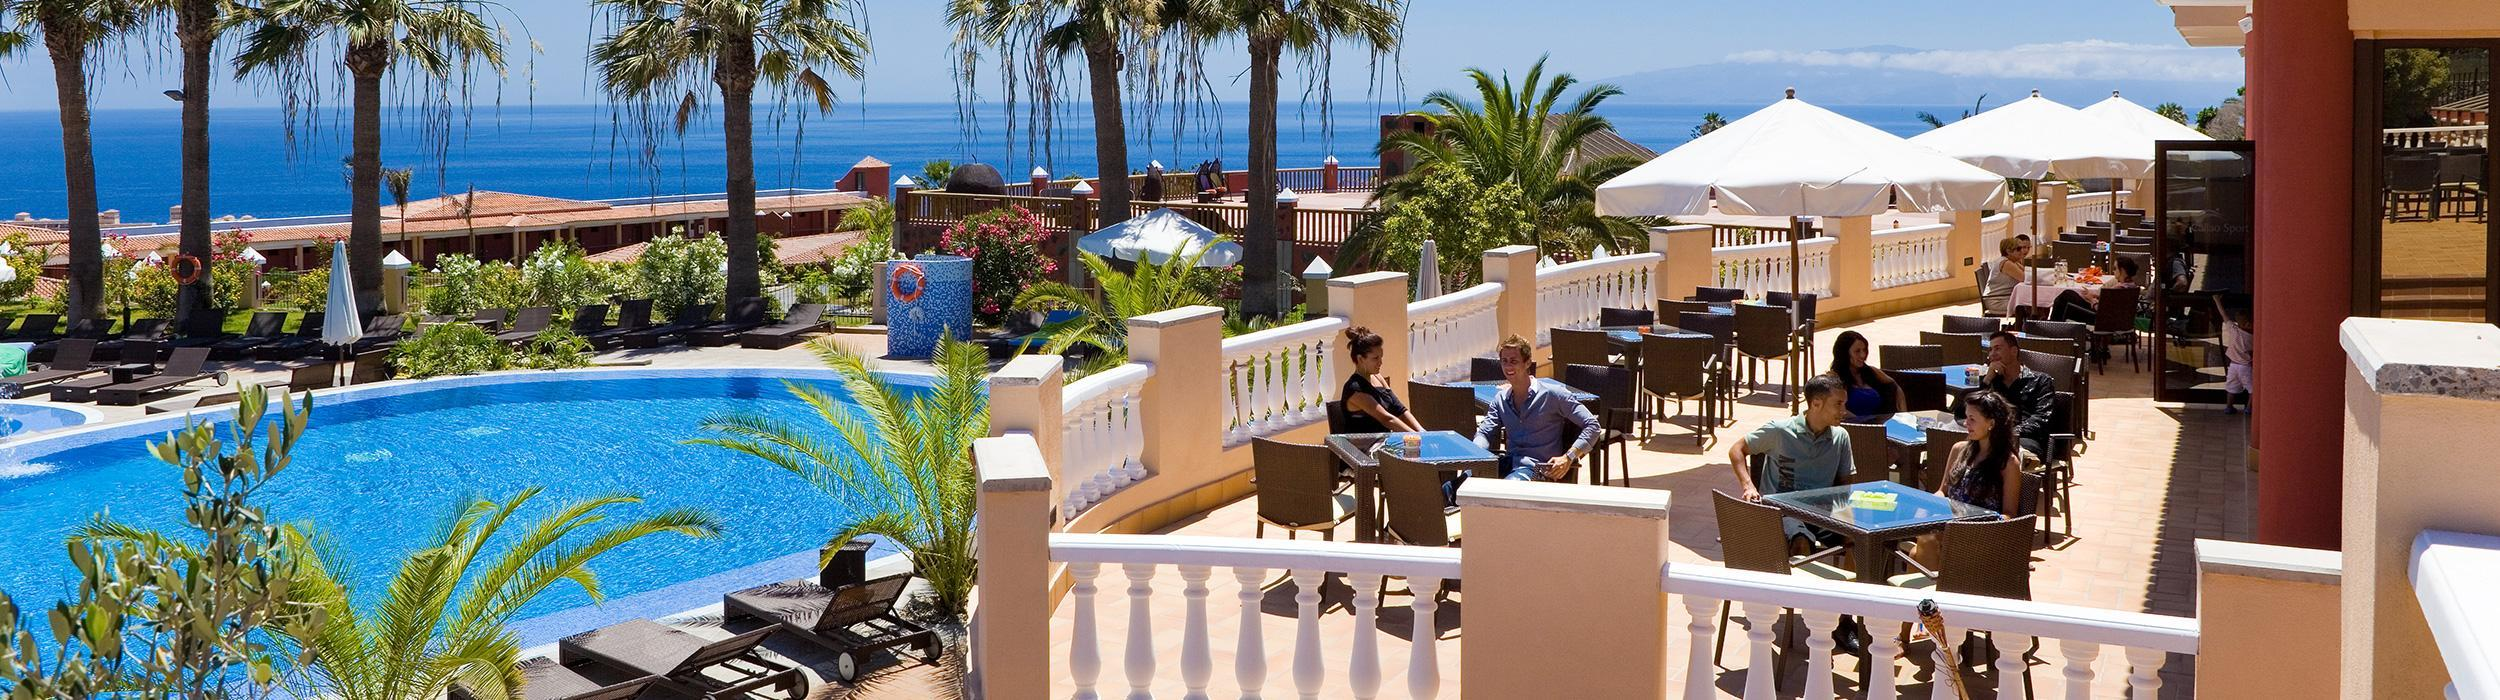 TENERIFE - FANTASTIC HALF-BOARD OFFER